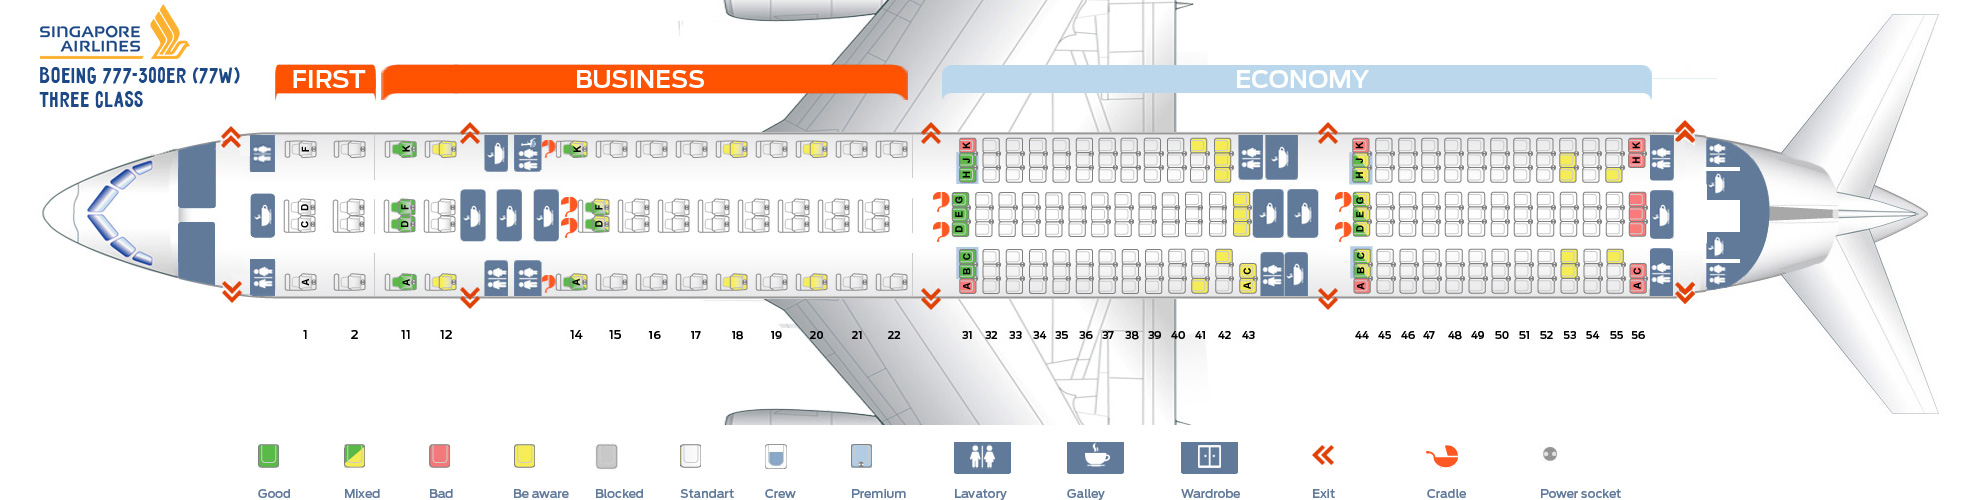 Seat Map Boeing 777-300ER Three Class Singapore Airlines